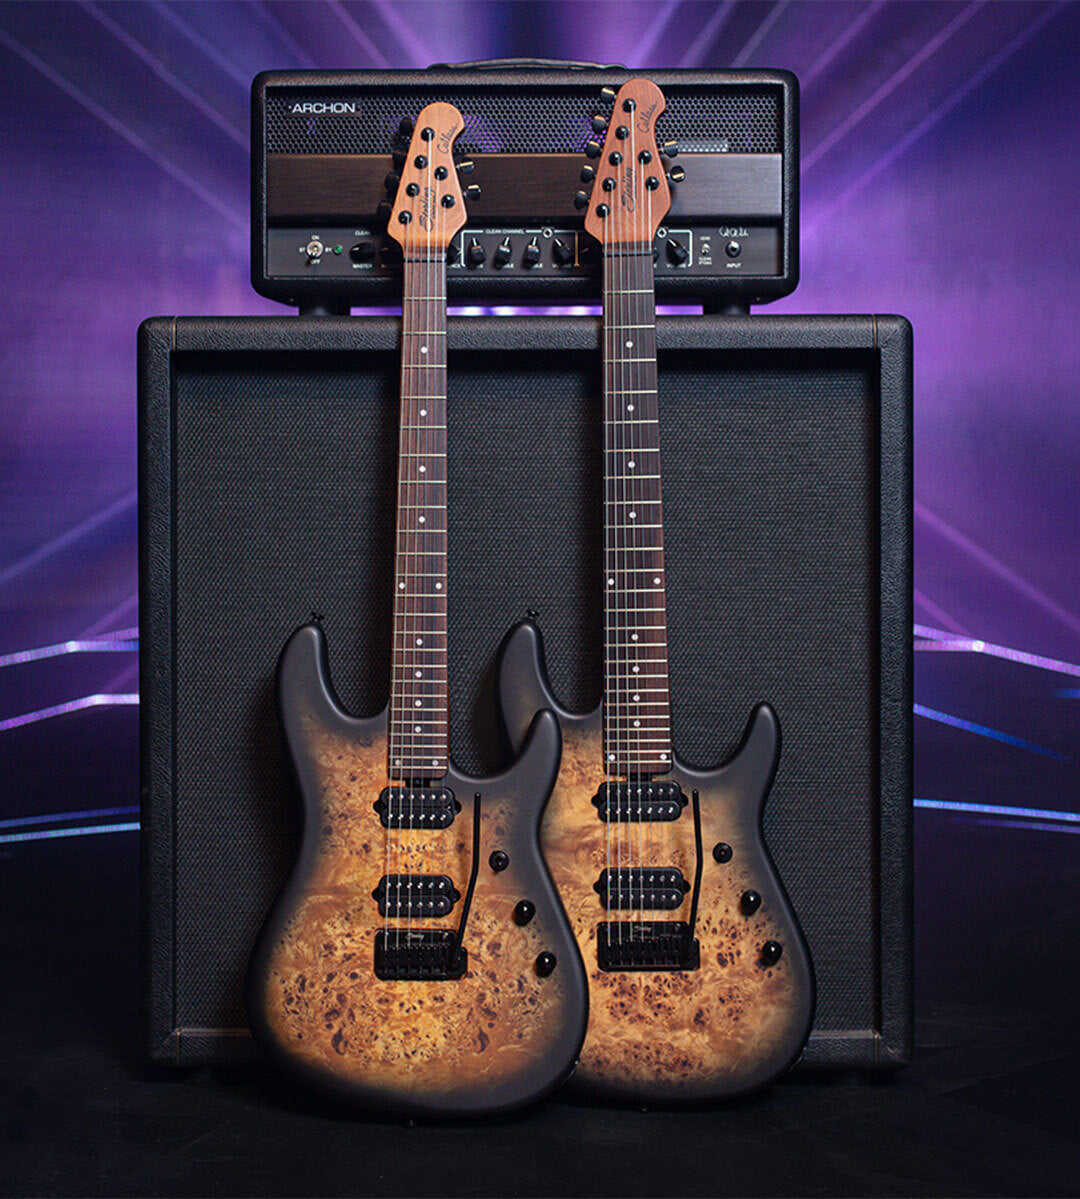 The Jason Richardson Cutlass guitar collection against a large amp.